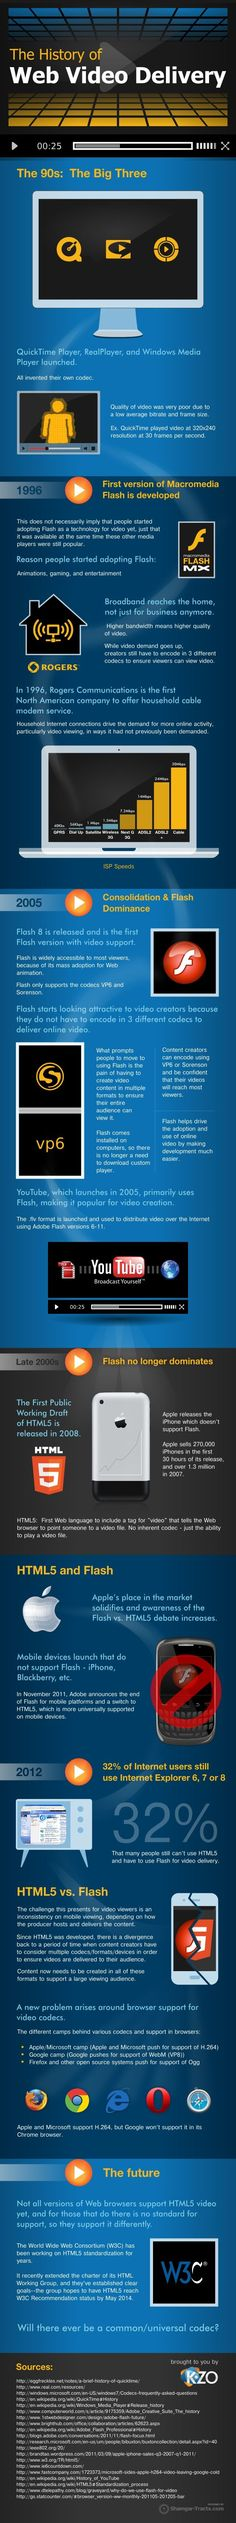 The History of Web Video Delivery